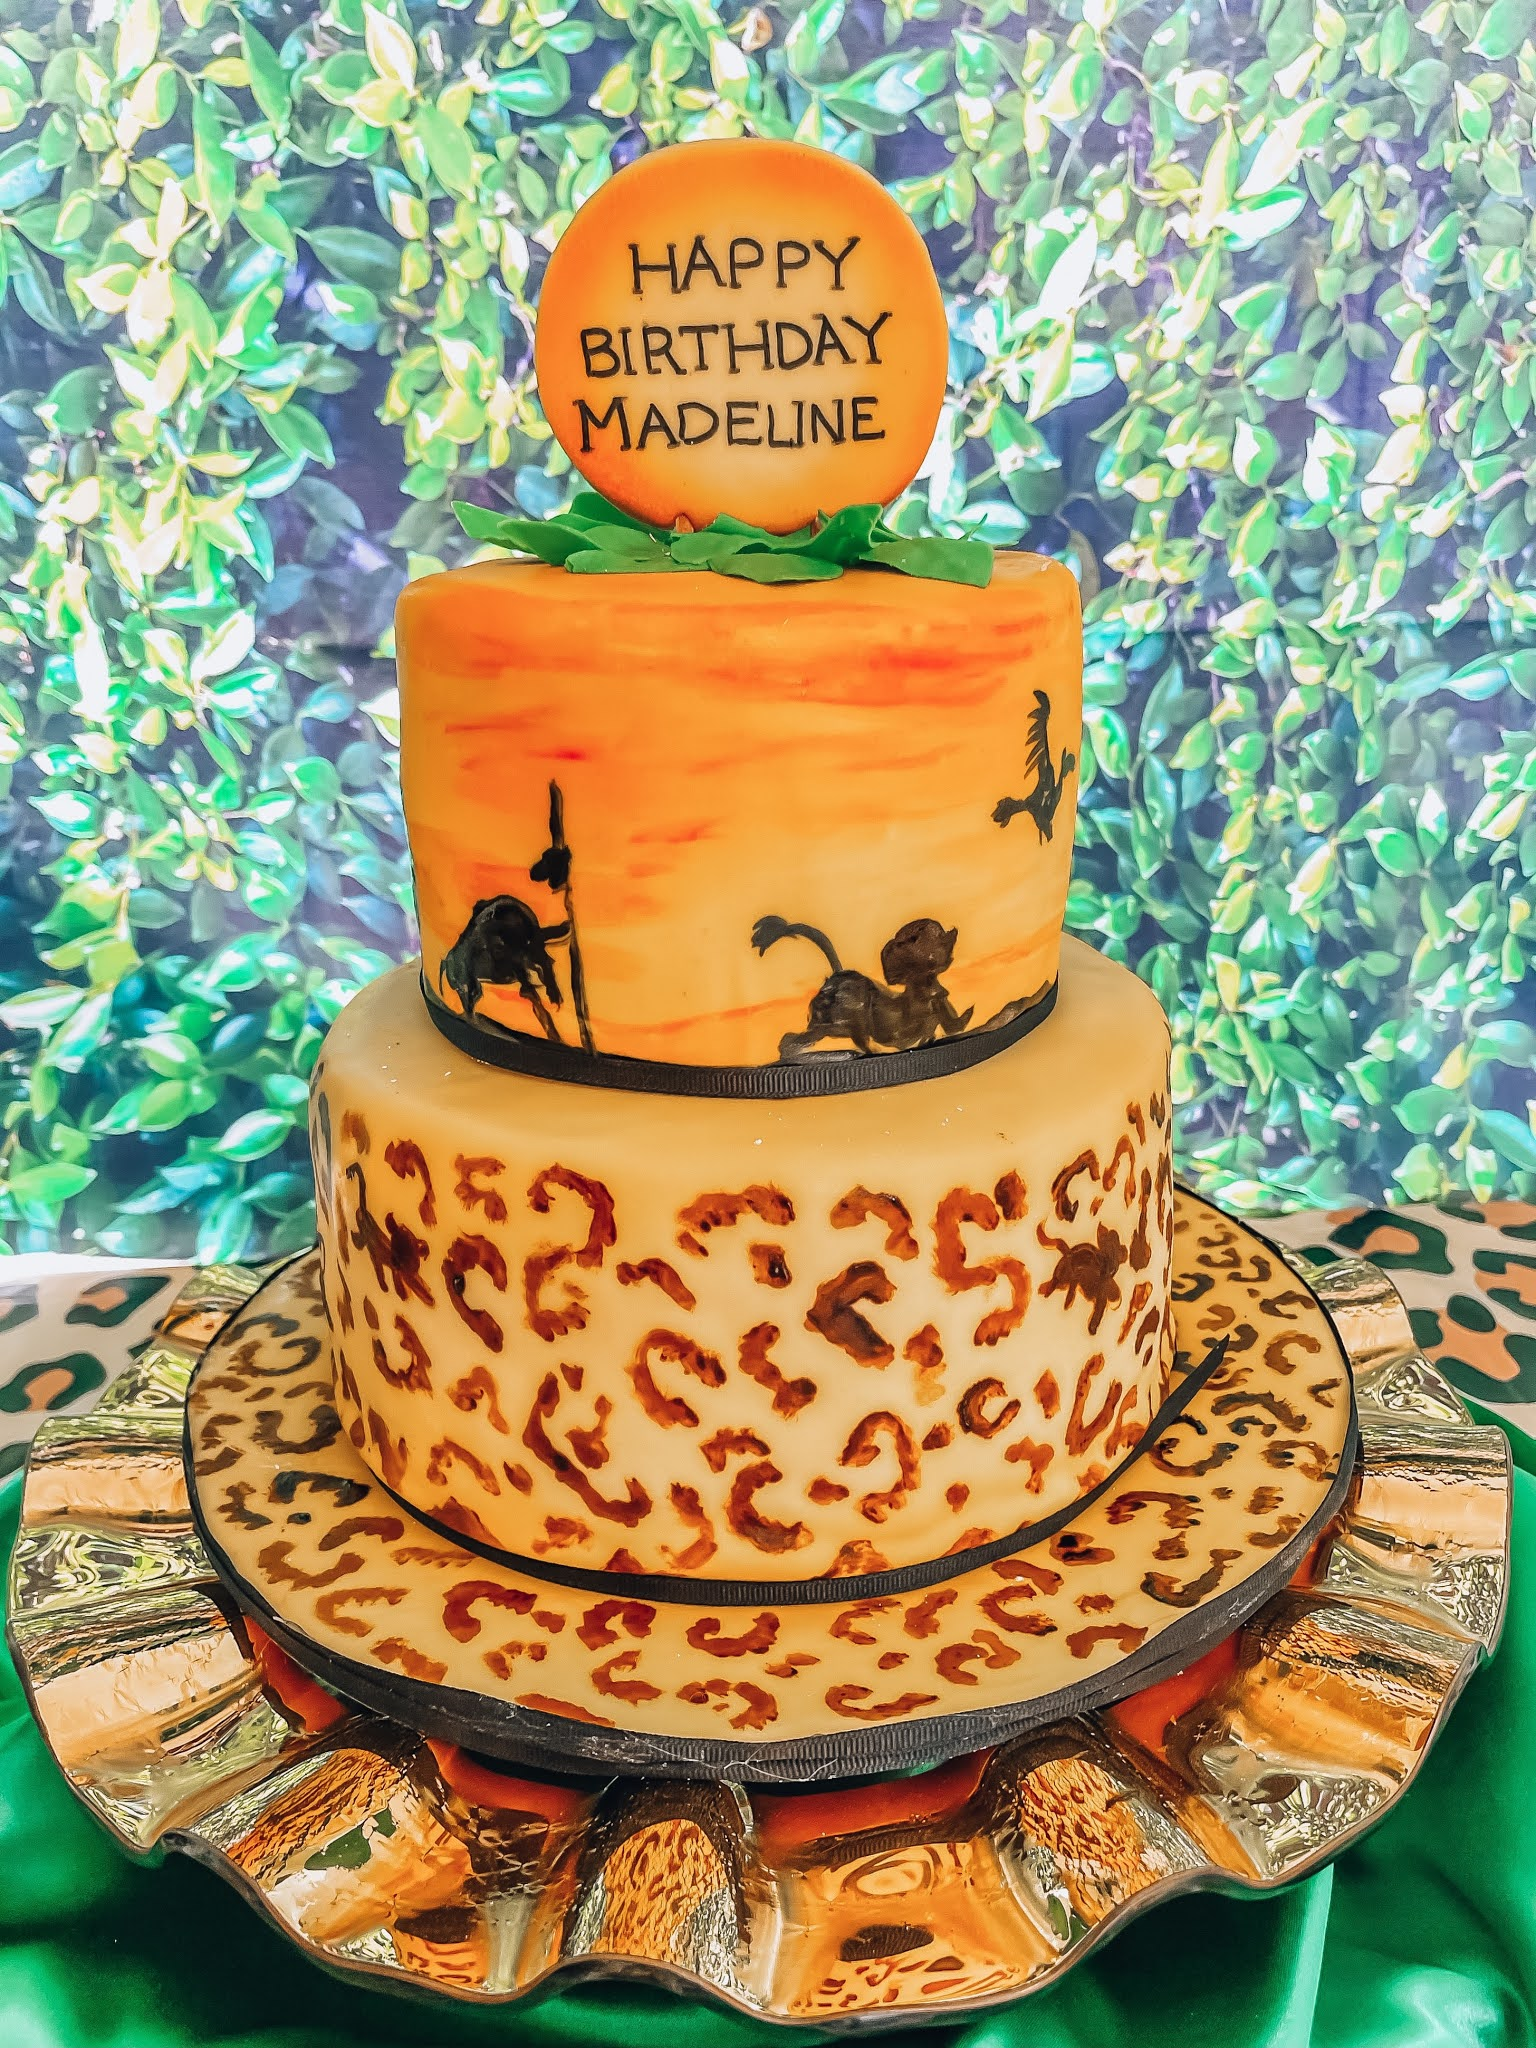 Madeline's Lion King 6th Birthday Party - Lion King Cake - Something Delightful Blog #partyideas #kidsbirthdayparty #lionkingparty #wildoneparty #safariparty #animalprintparty